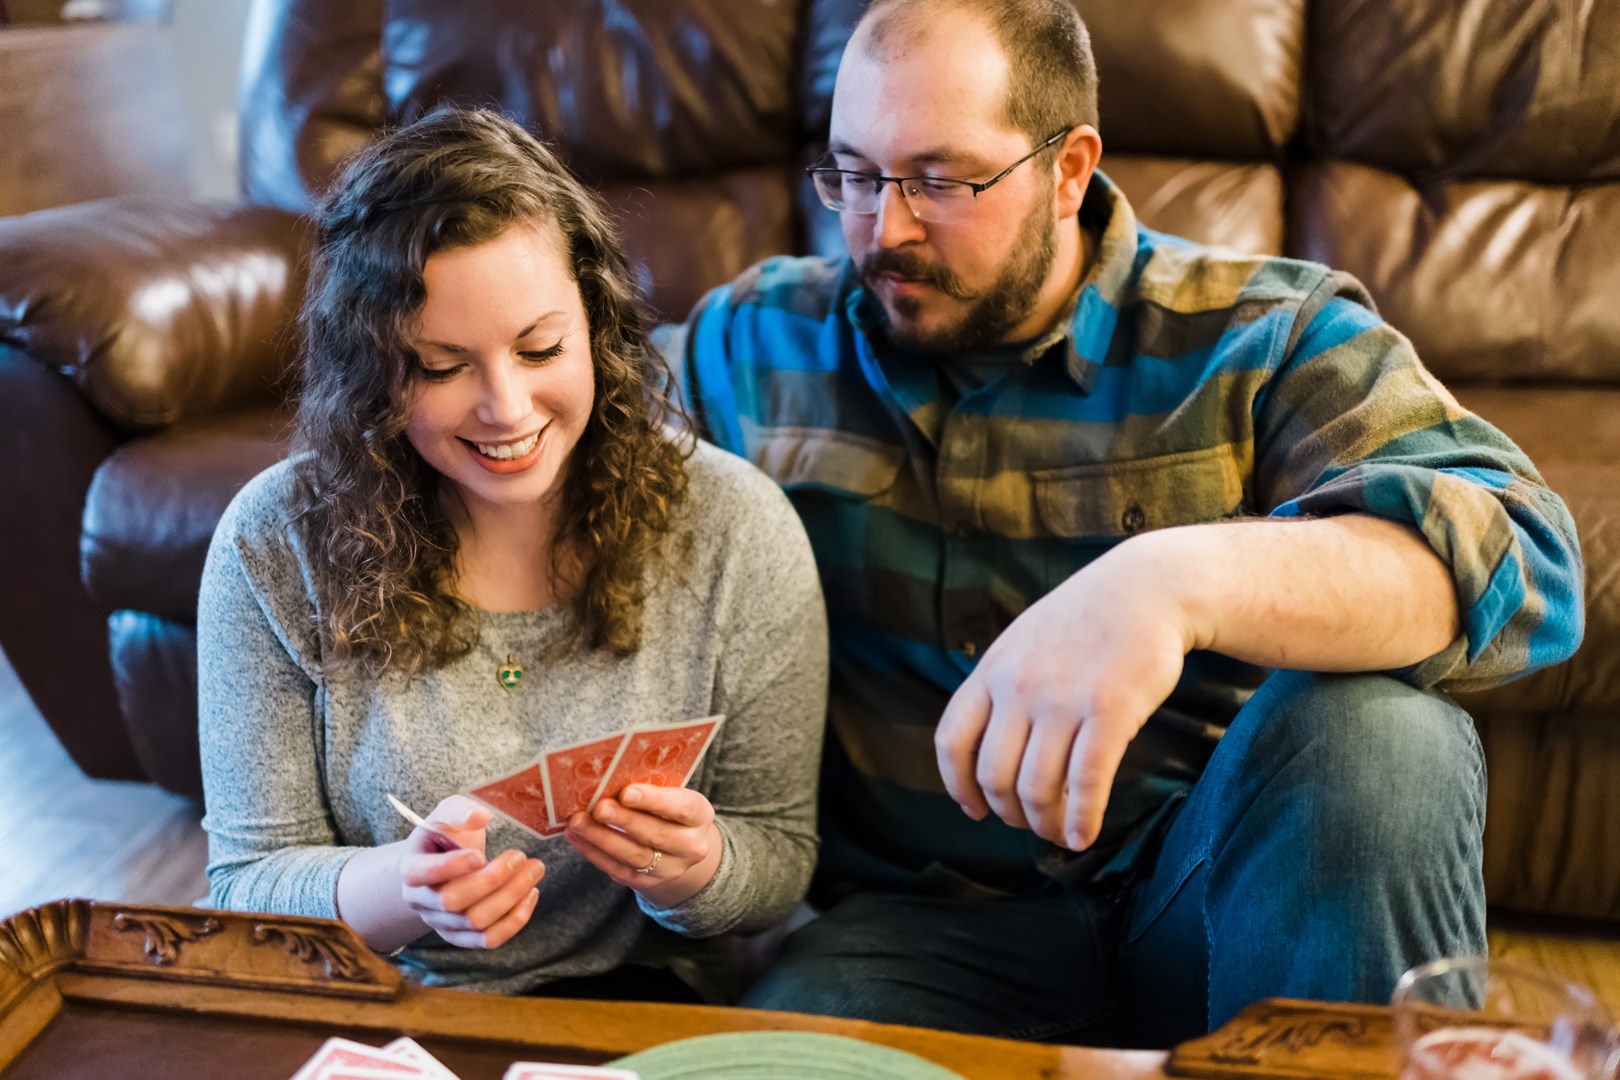 Woman smiles at her good cribbage hand